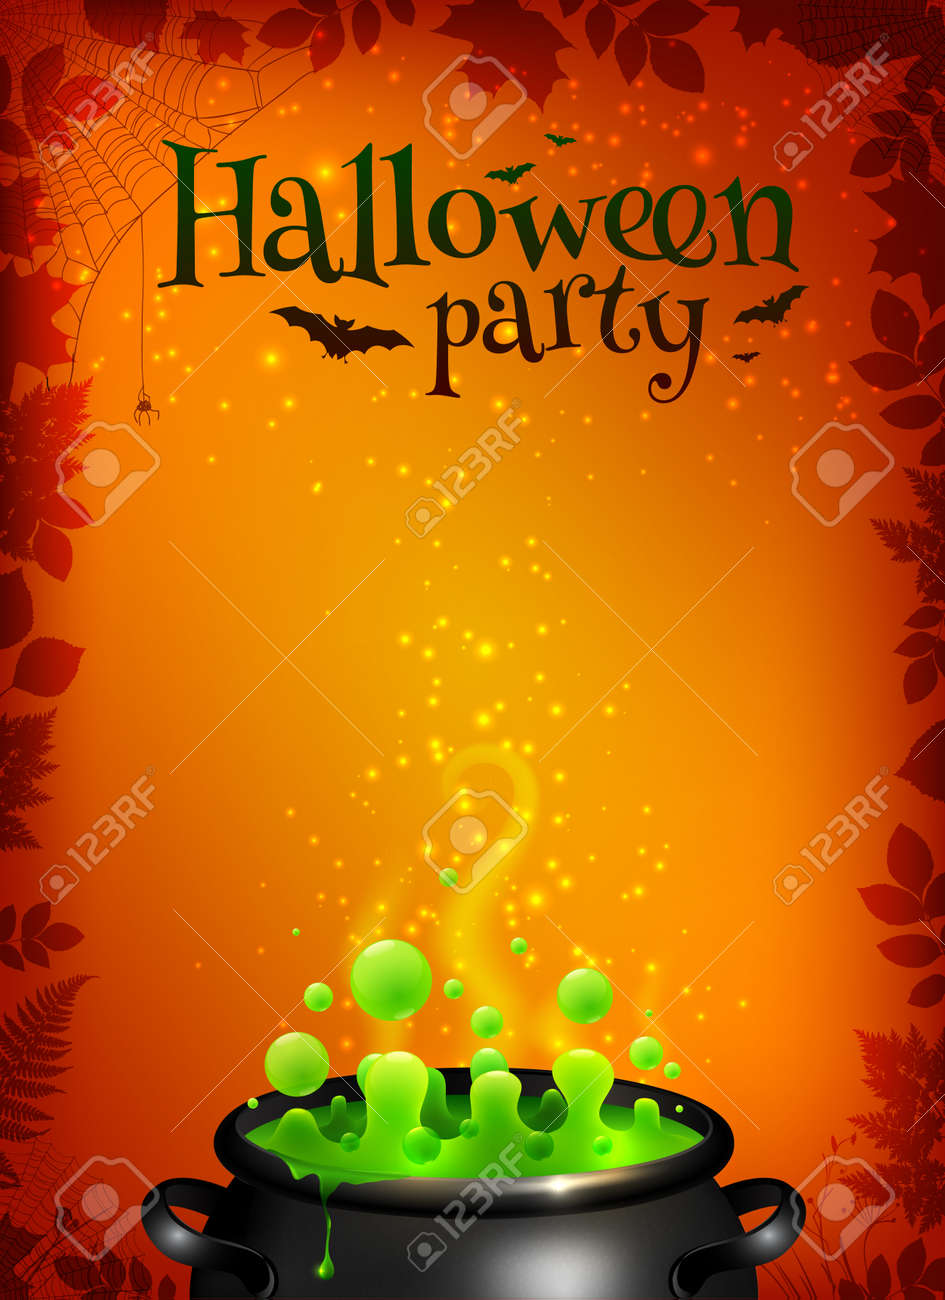 Orange Vector Halloween Poster Template With Green Potion In Black Cauldron Stock